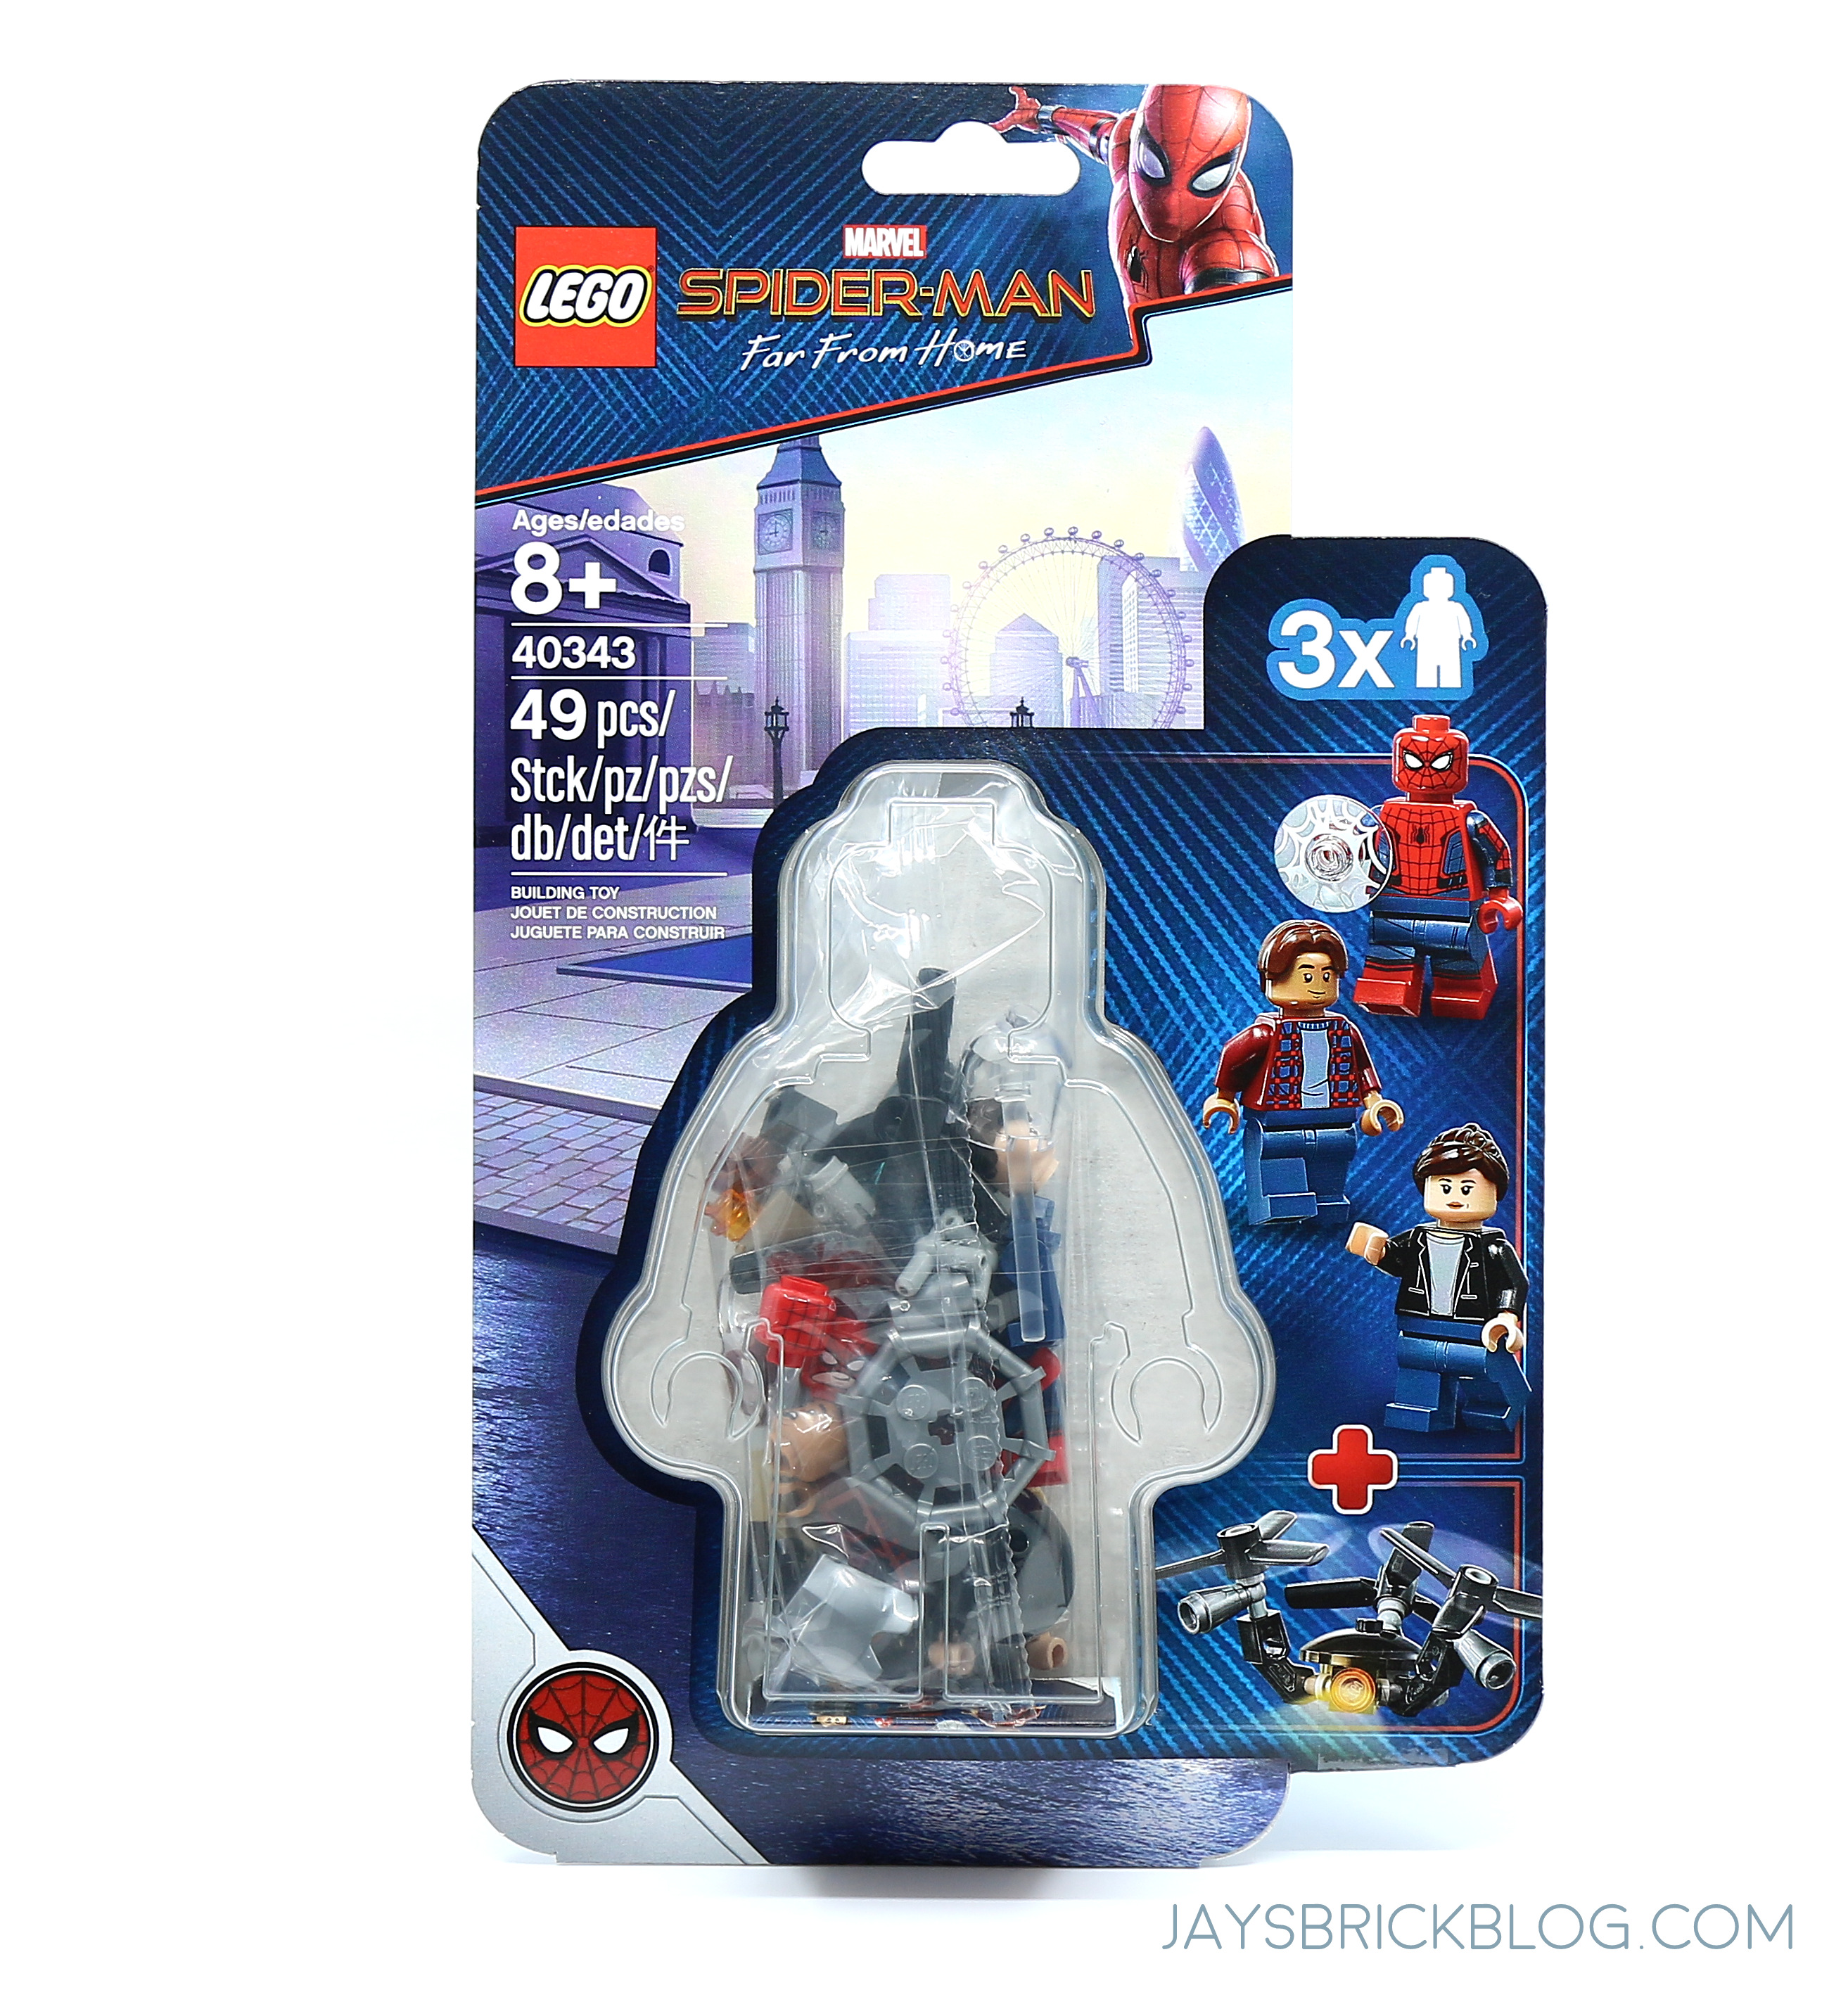 Minifigure Spider Far Man Home 40343 ReviewLego Pack From 8nN0XOwkP